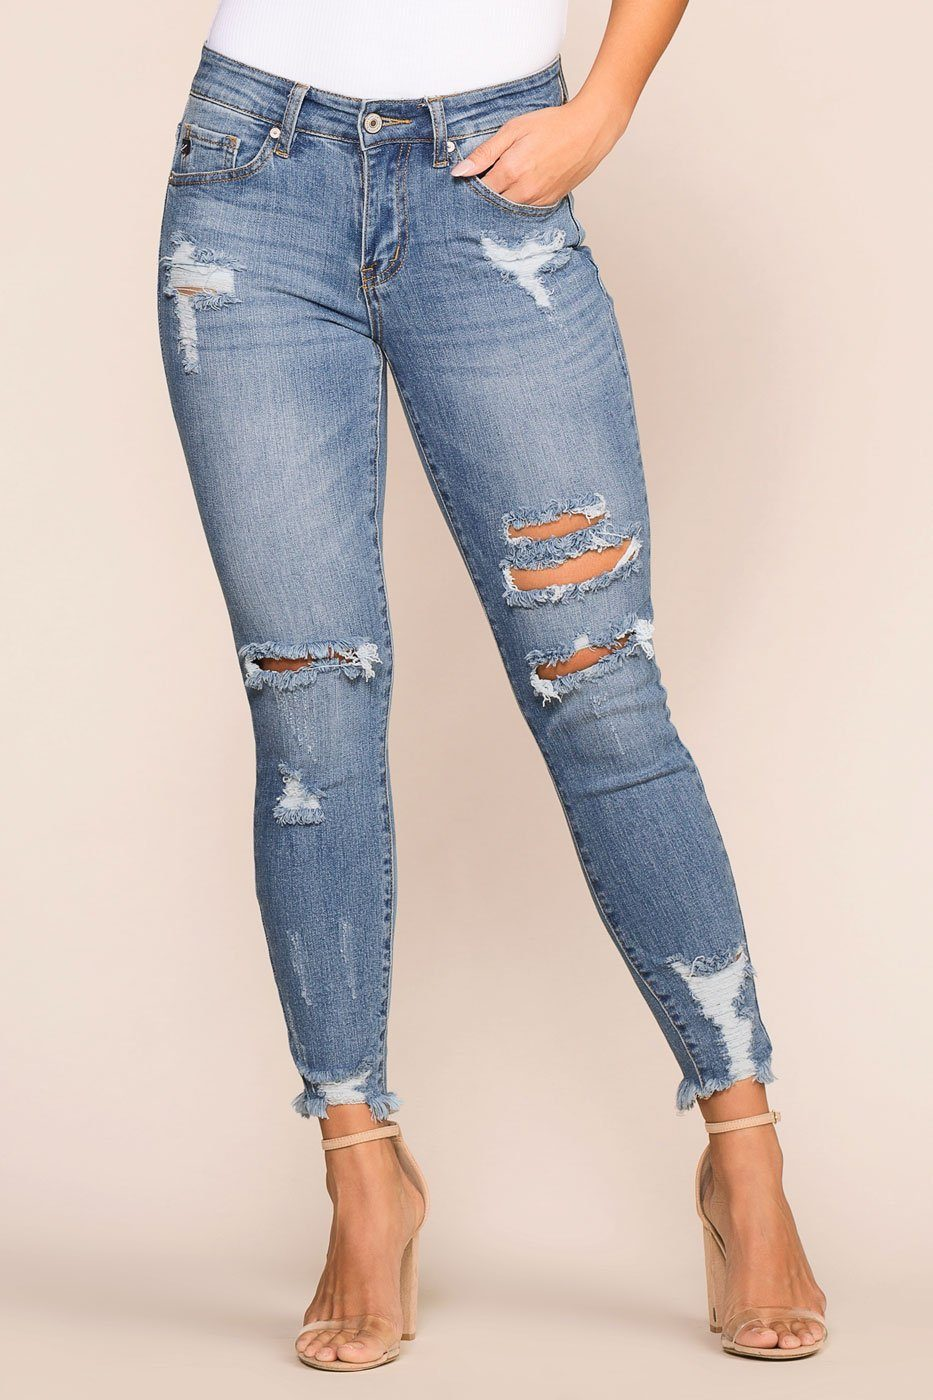 Priceless | Medium Wash | Distressed | Skinny Jeans | Womens